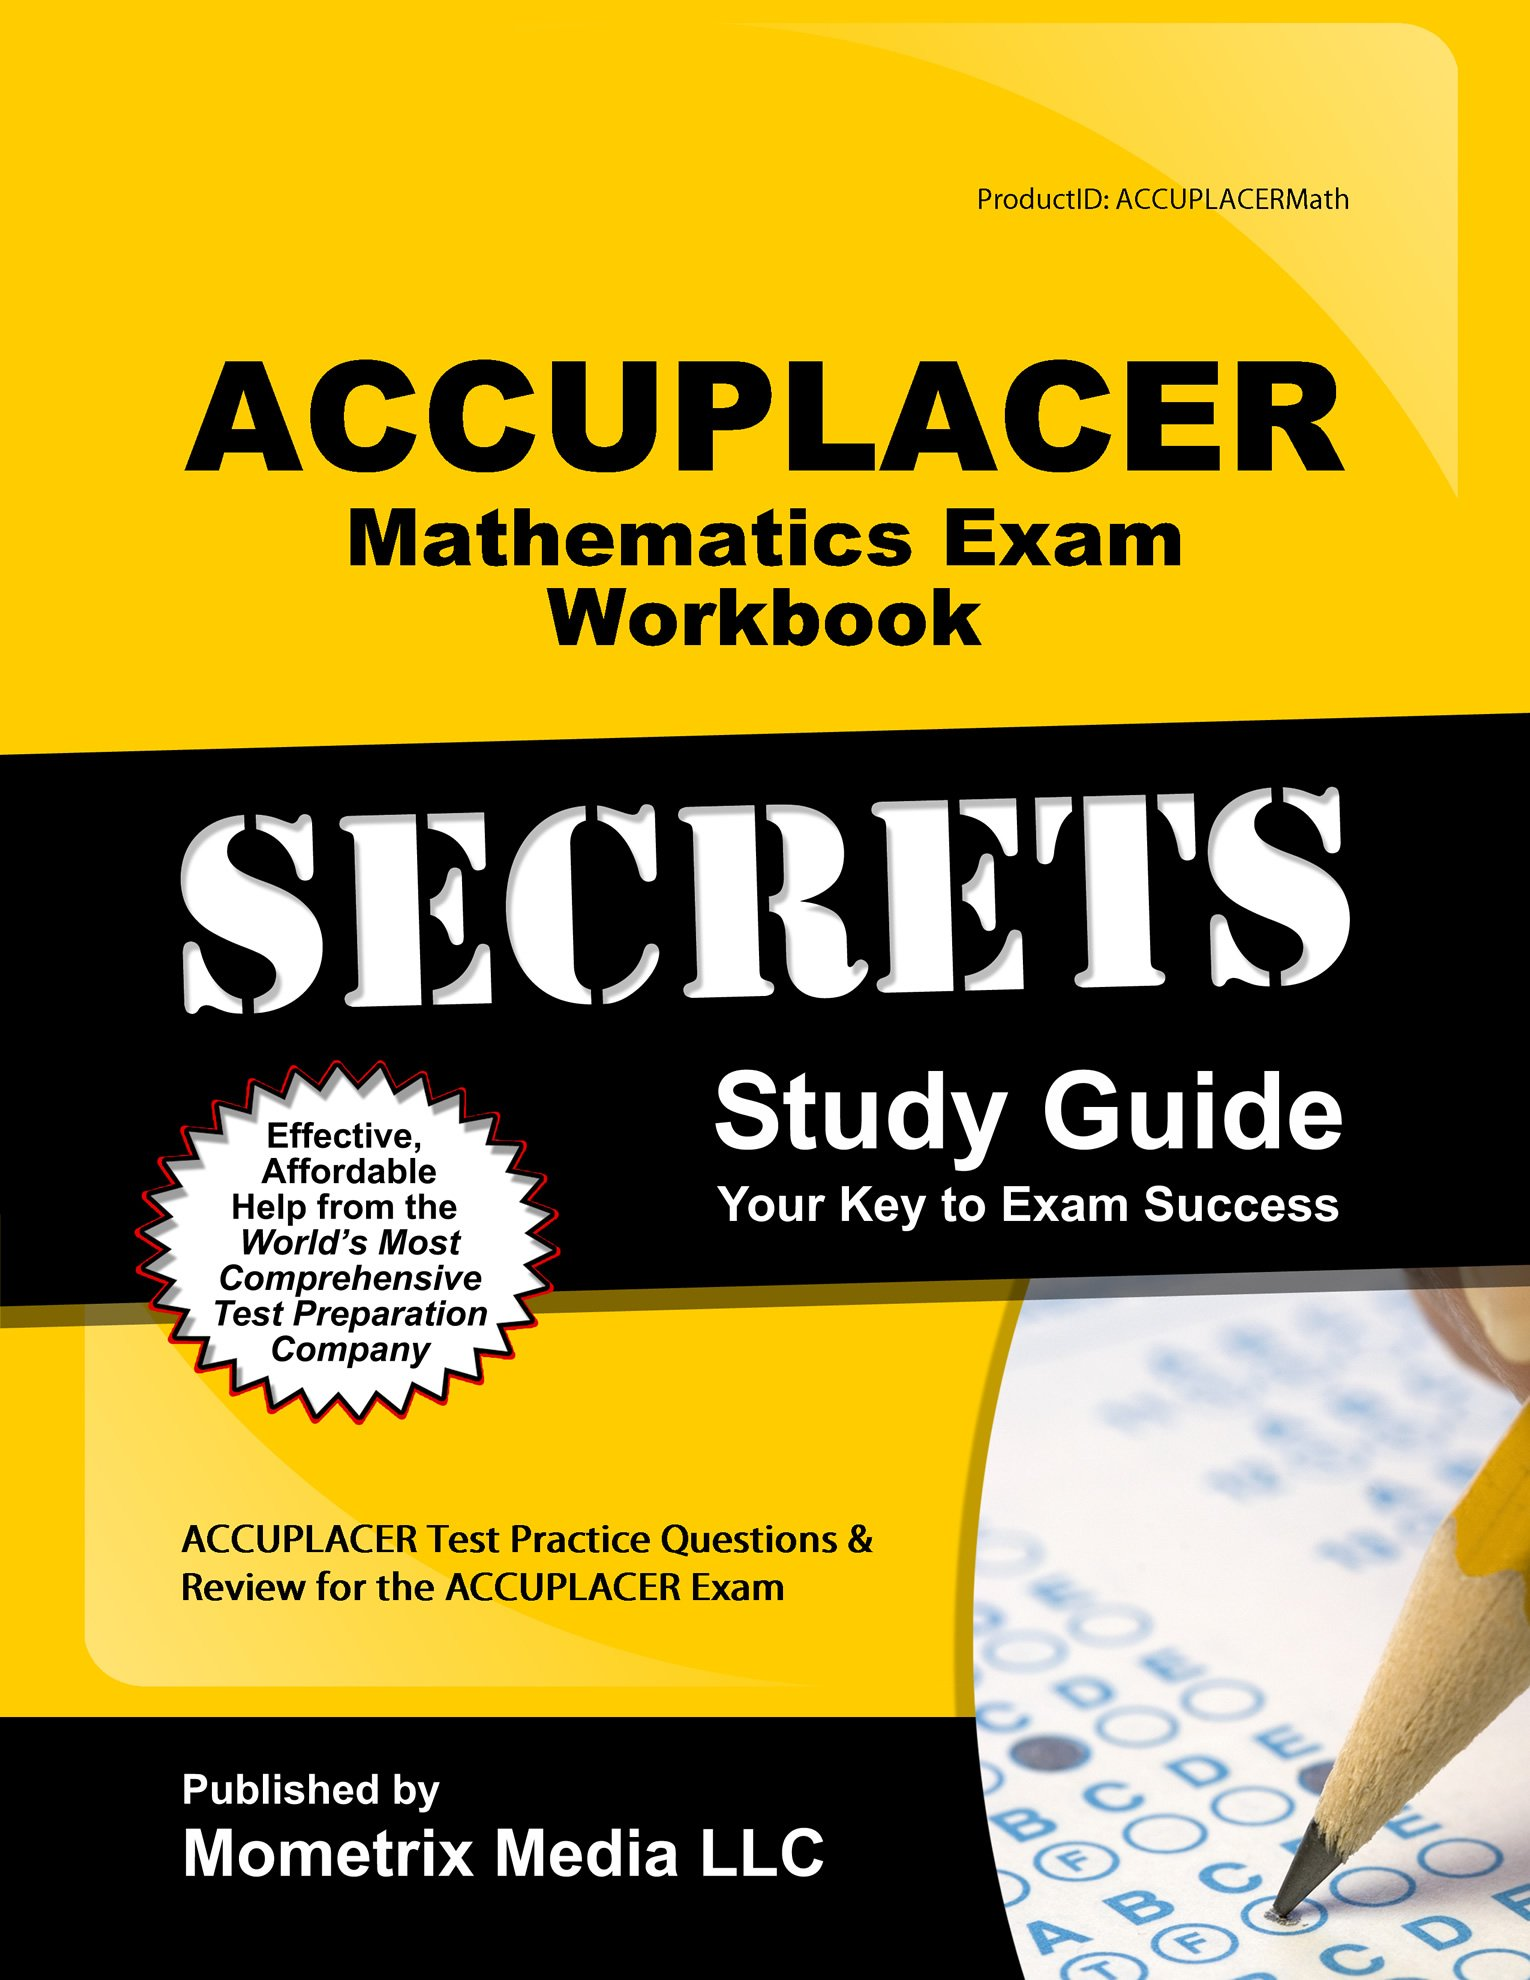 Download ACCUPLACER Mathematics Exam Secrets Workbook: ACCUPLACER Test Practice Questions & Review for the ACCUPLACER Exam ebook